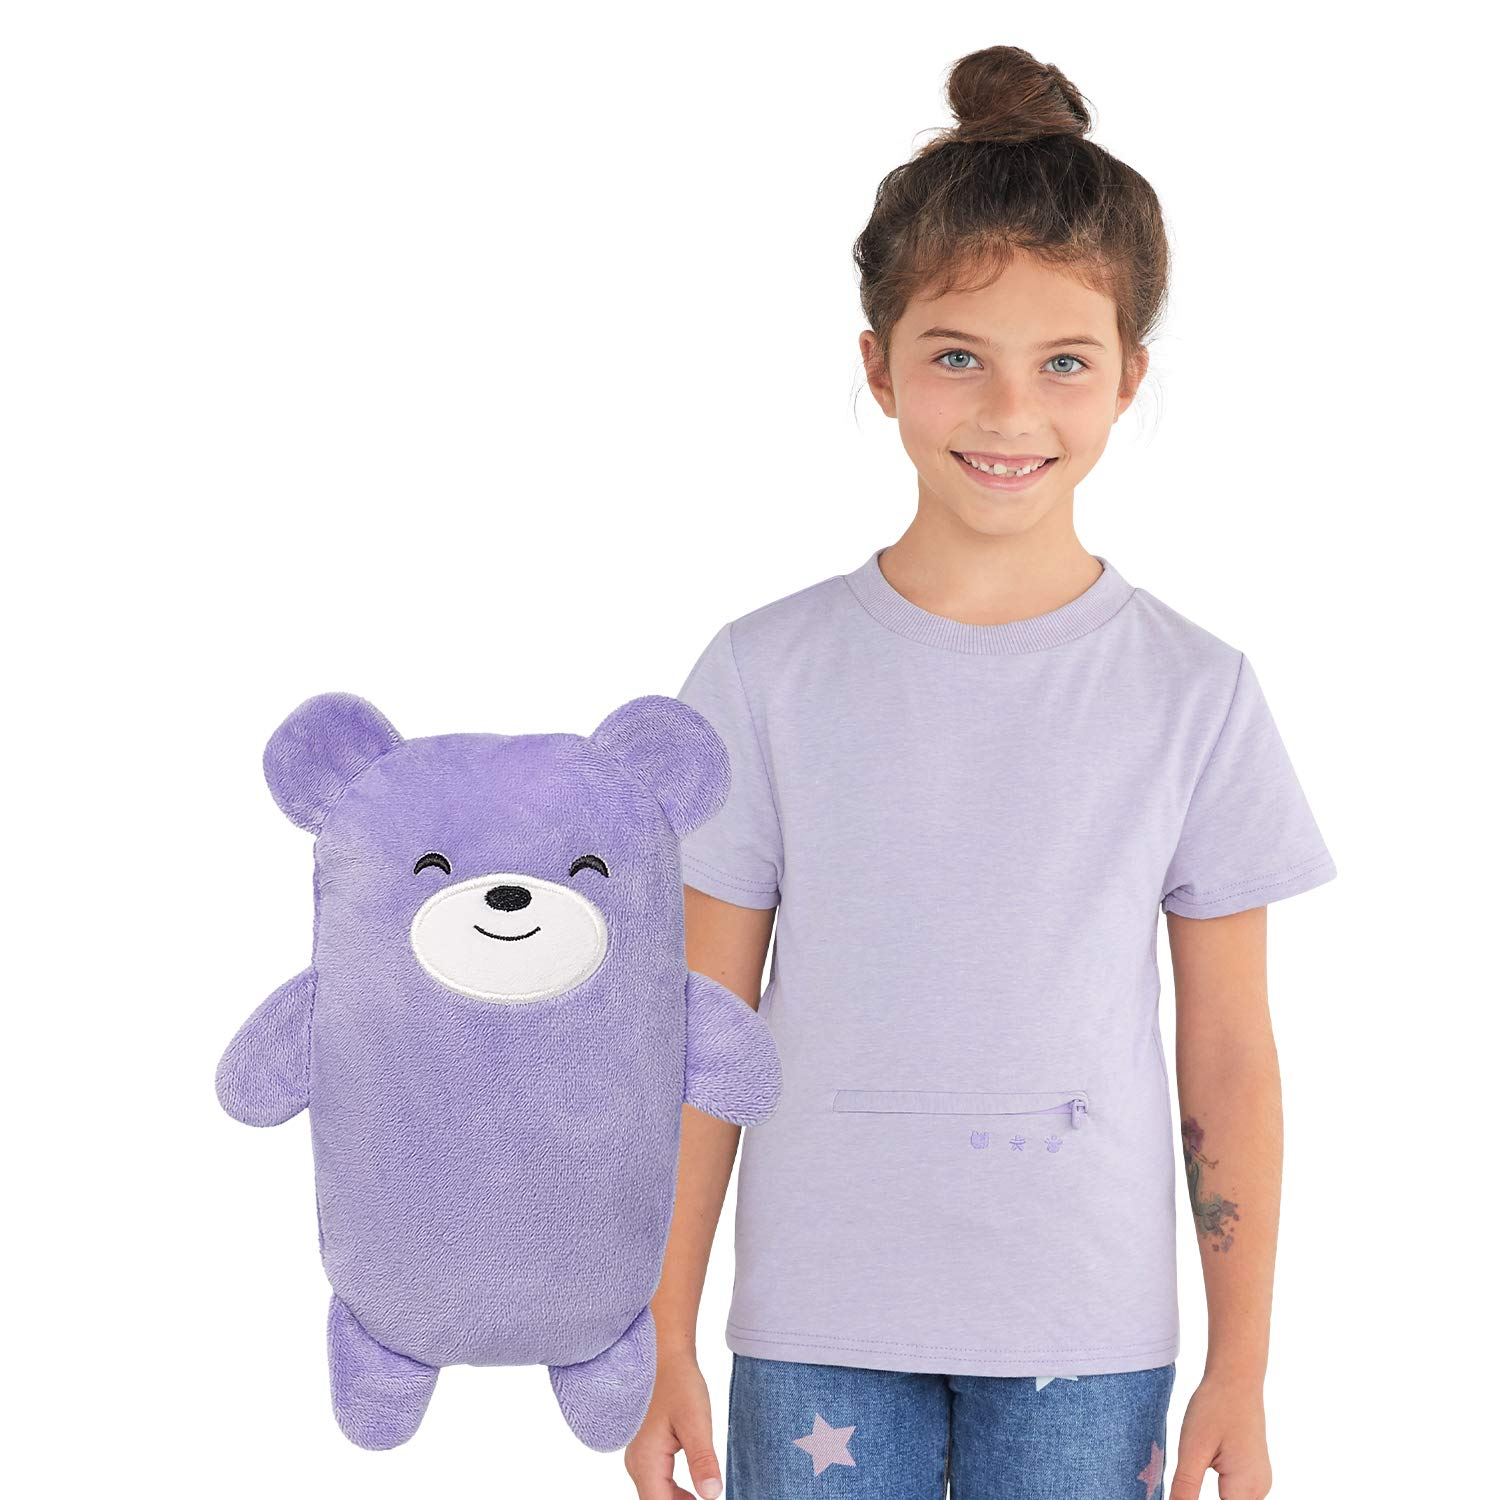 Cubcoats Bori The Bear 2-in-1 Transforming Tee T-Shirt and Soft Plushie